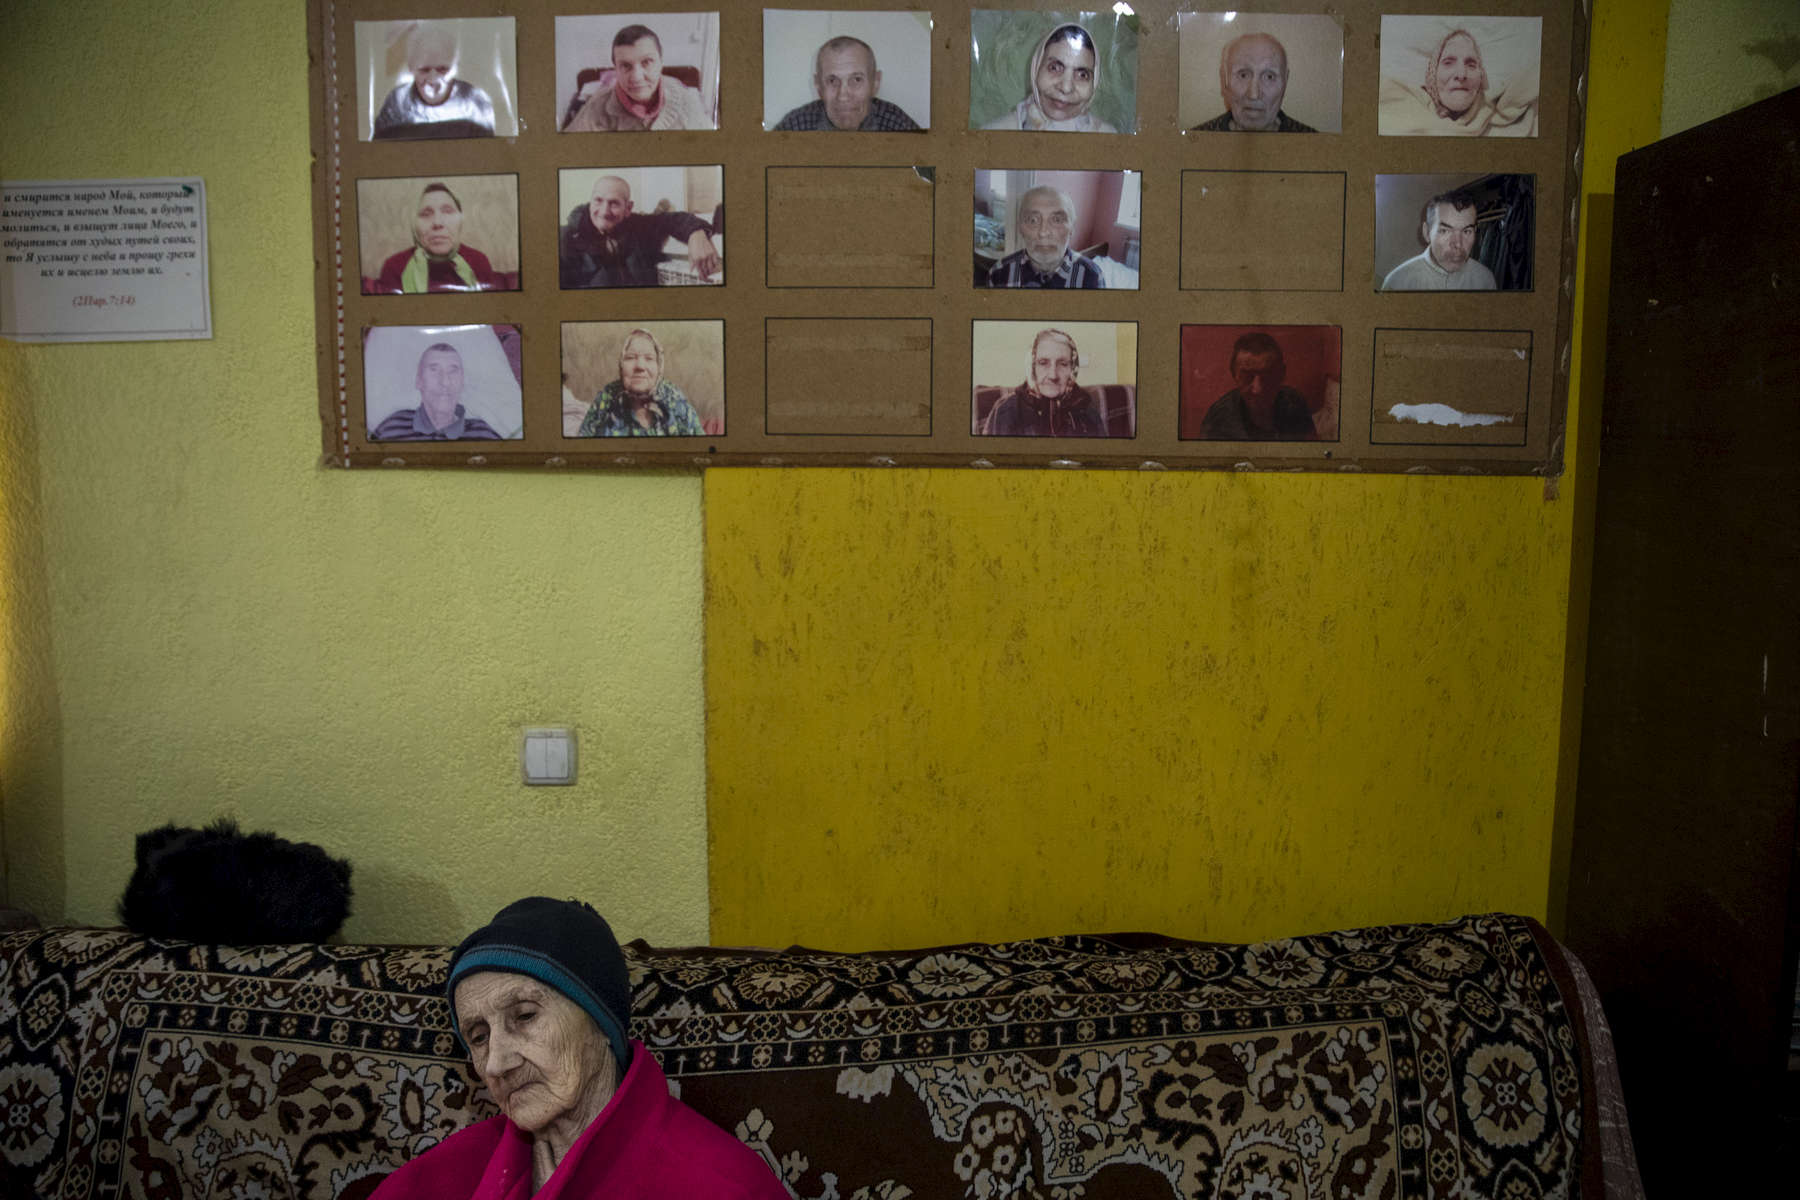 Druzhkovka Nursing home - Donetsk region:Lidiya Nikitichna, 78, rests on a sofa. Photographs of residents are seen, as they pass away their photo is taken off the wall. The nursing home facility takes care of many elderly who are left behind, and poverty stricken due to the war. After more than four years of war the armed conflict in eastern Ukraine has a human toll that is staggering. The war has displaced more than 1.6 million with over 2,500 civilians killed and 9,000 injured. Some 200,000 people live under constant fear of shelling every day, with nearly a third of the 3.4 million people in need of humanitarian assistance over 60 years of age. Ukraine has the highest proportion of elderly affected by war in the world.